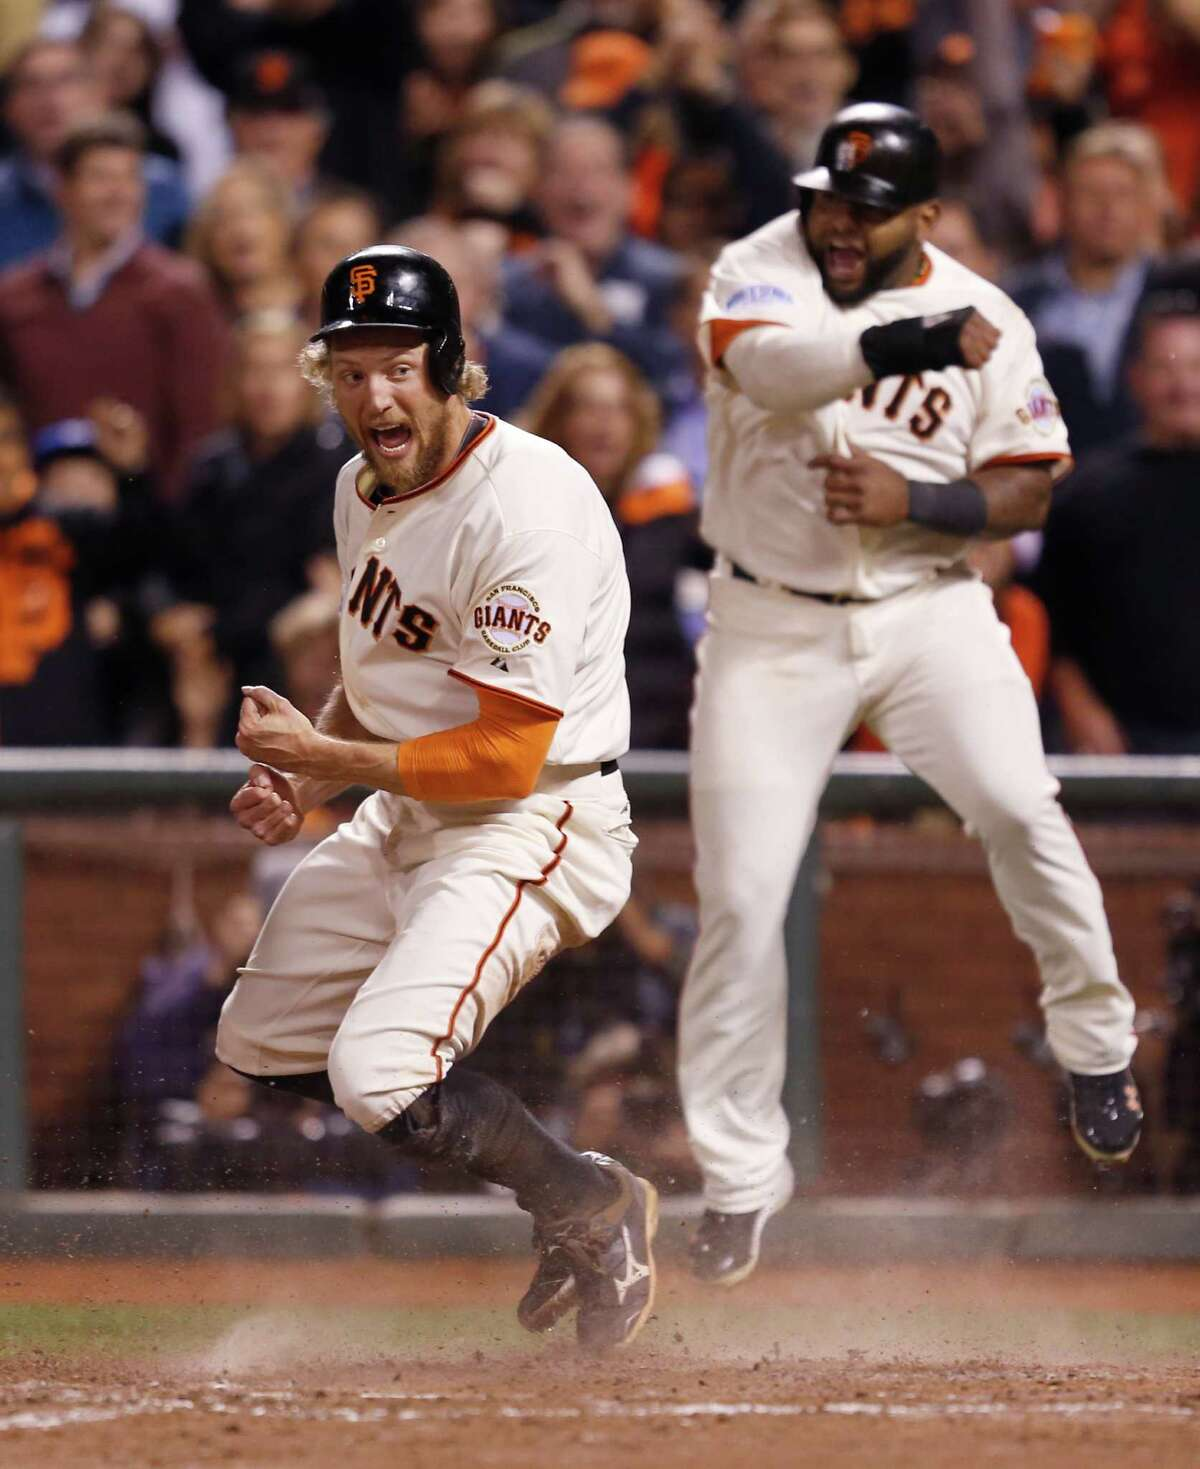 Giants Hunter Pence and Giants Pablo Sandoval celebrate their eighth inning score off a Juan Perez triple during Game 5 of the World Series at AT&T Park on Sunday, Oct. 26, 2014 in San Francisco, Calif.